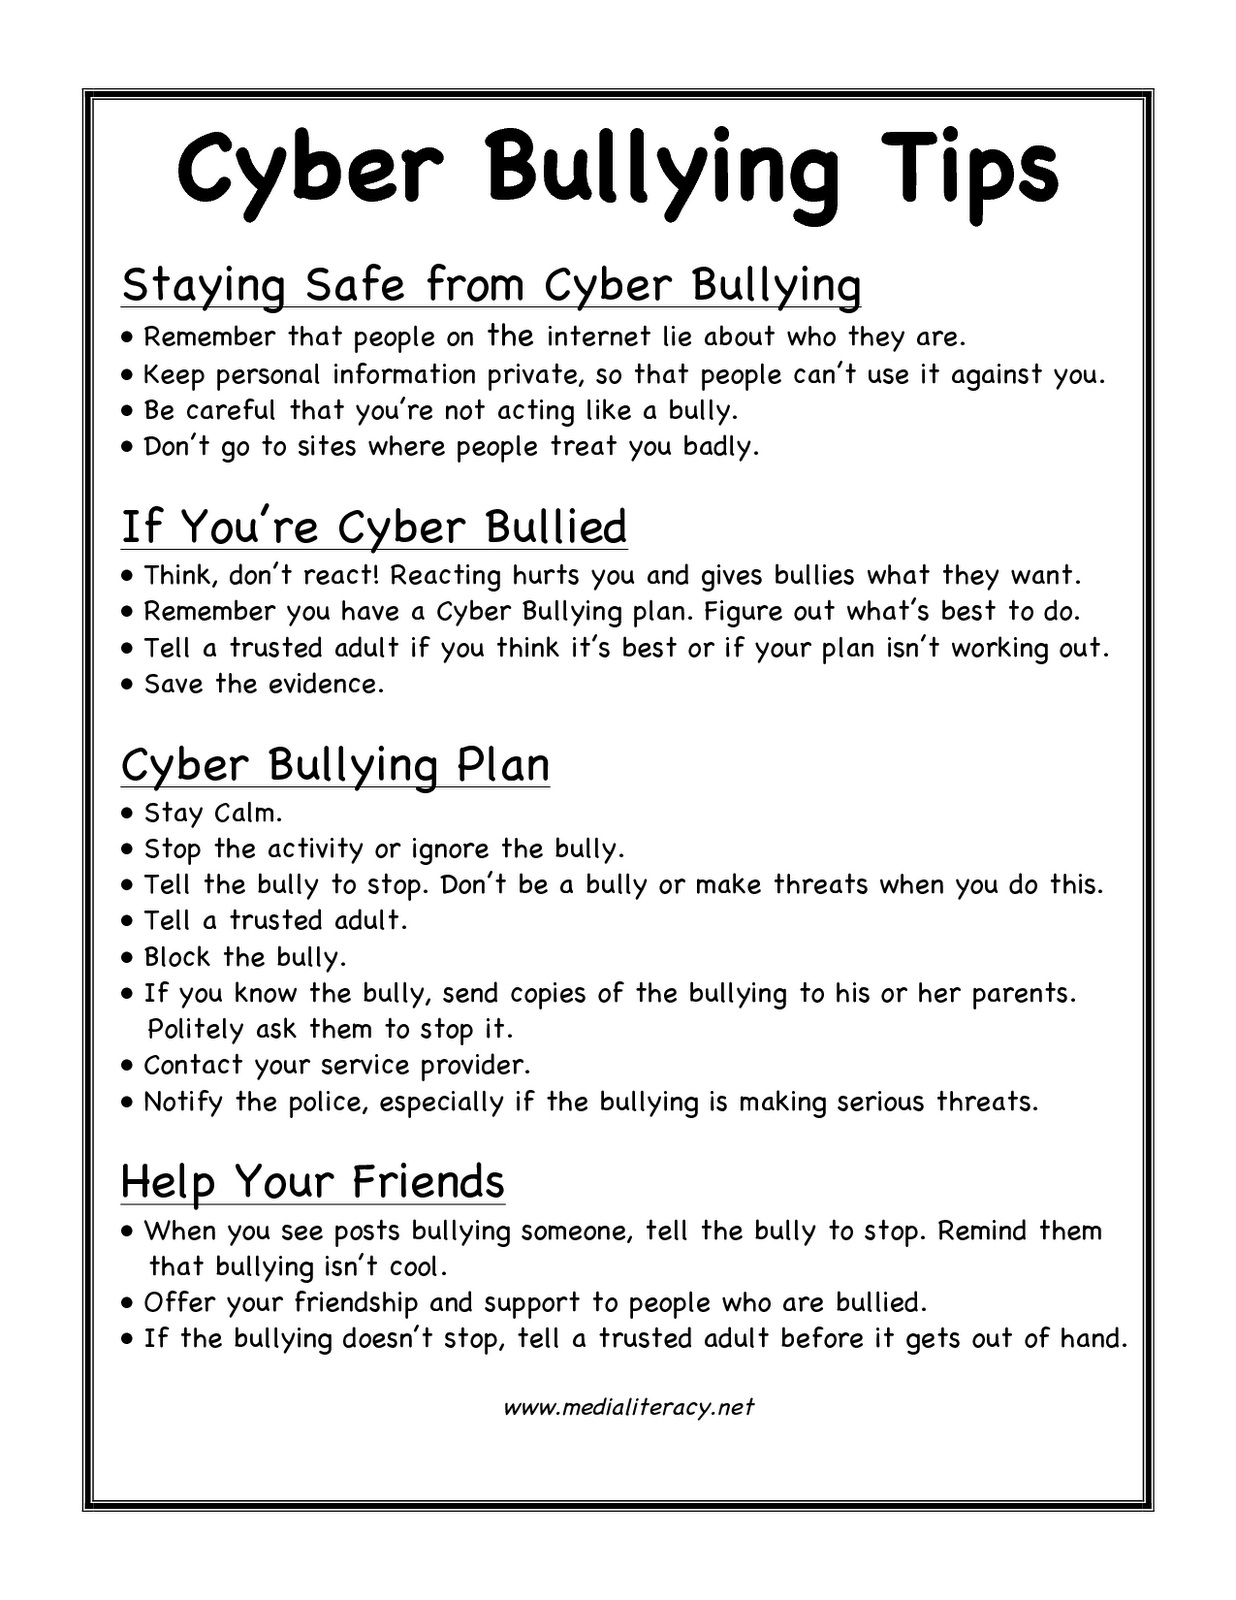 Printables Cyber Bullying Worksheets 1000 images about cyberbullying on pinterest bullying posters common sense and student